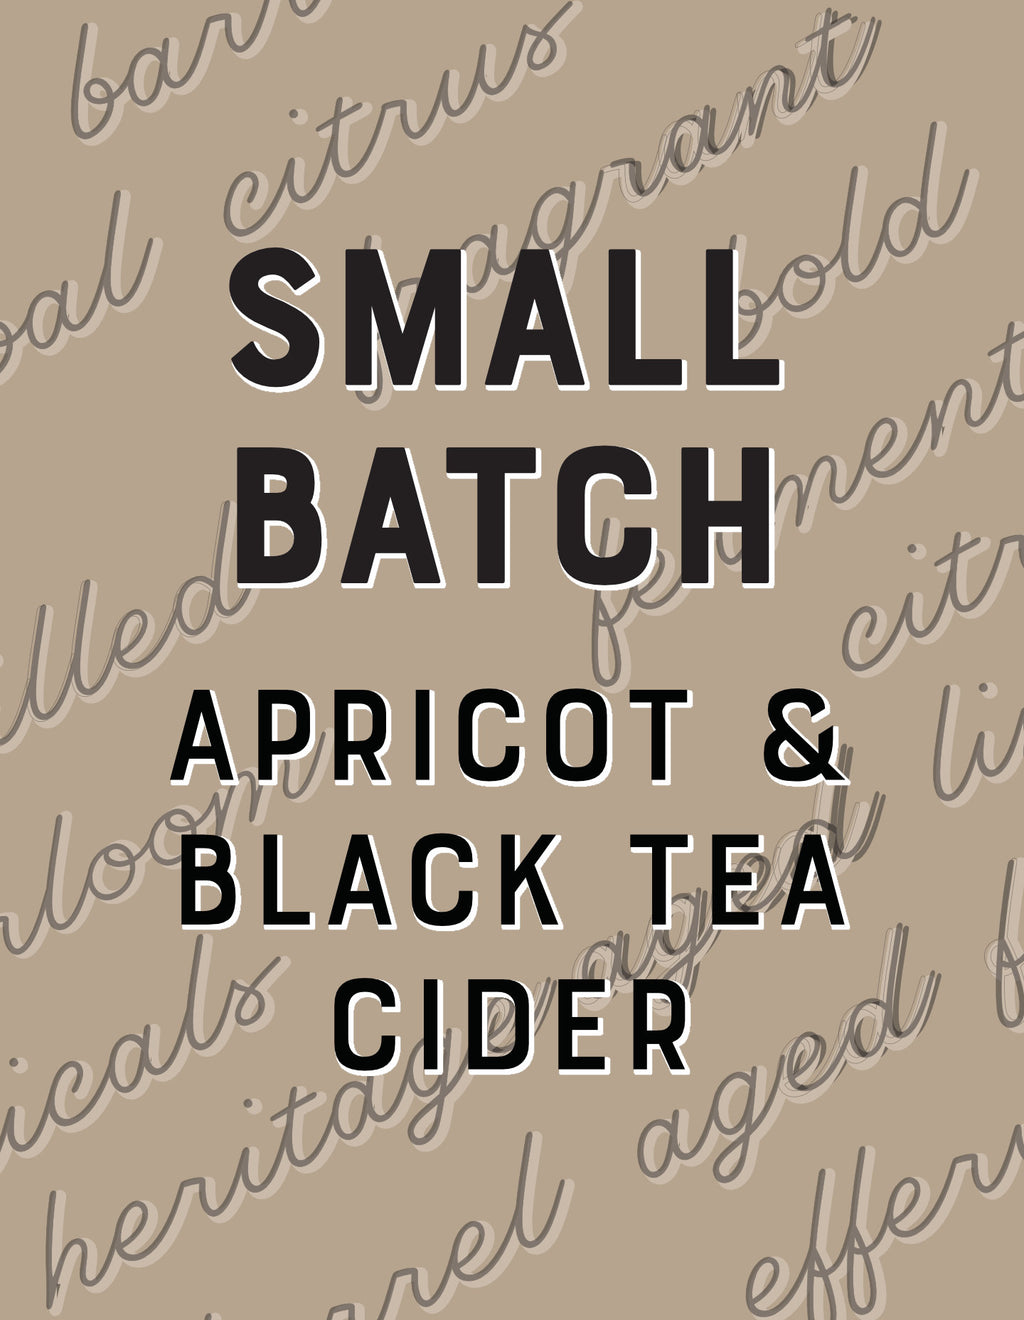 Apricot & Black Tea Cider